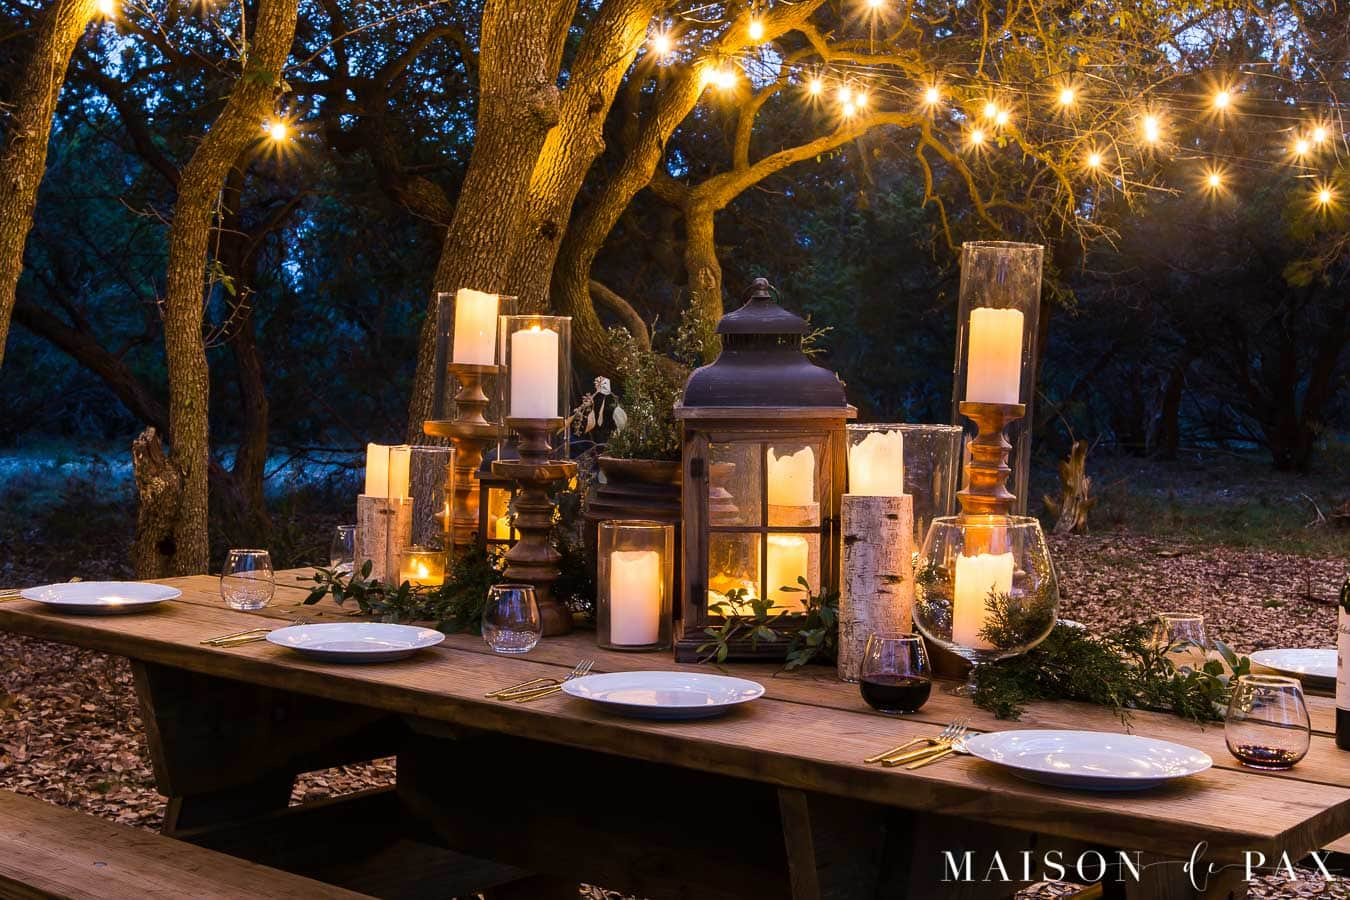 Create a rustic outdoor wedding table with candles, string lights, and greenery - Maison de Pax